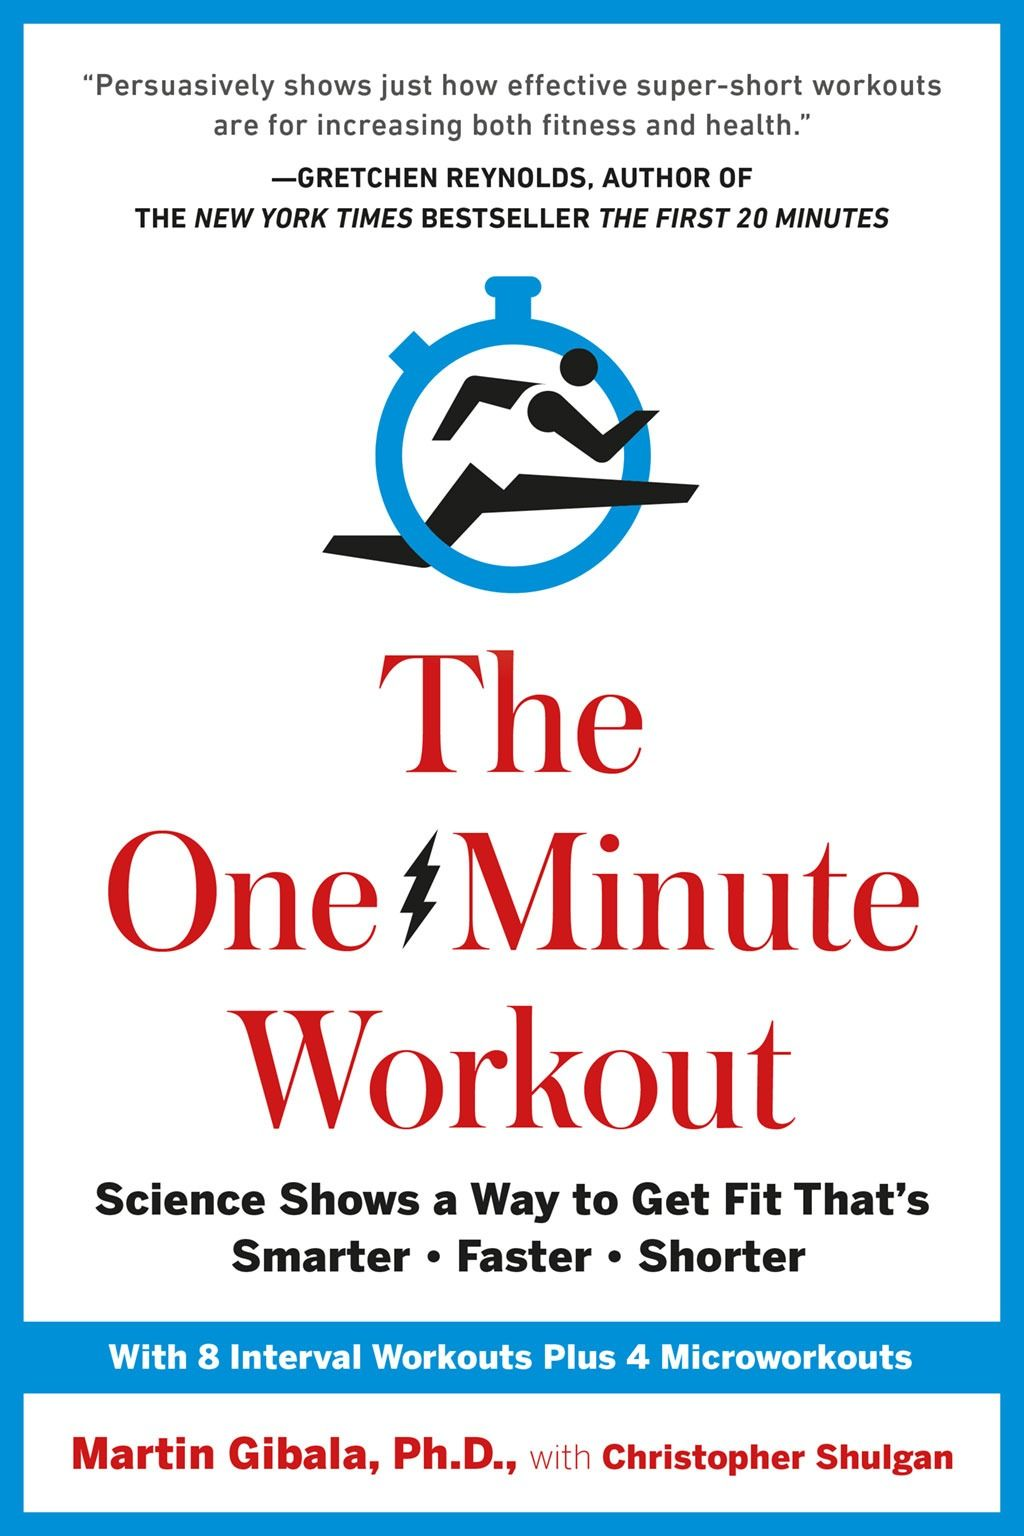 No exercise scientist has done more to draw attention to the effectiveness of high-intensity interval training than Martin Gibala, Ph.D. With the arrival of his new book, The One-Minute Workout, he reveals what men north of 40 need to do to stay fit and healthy.